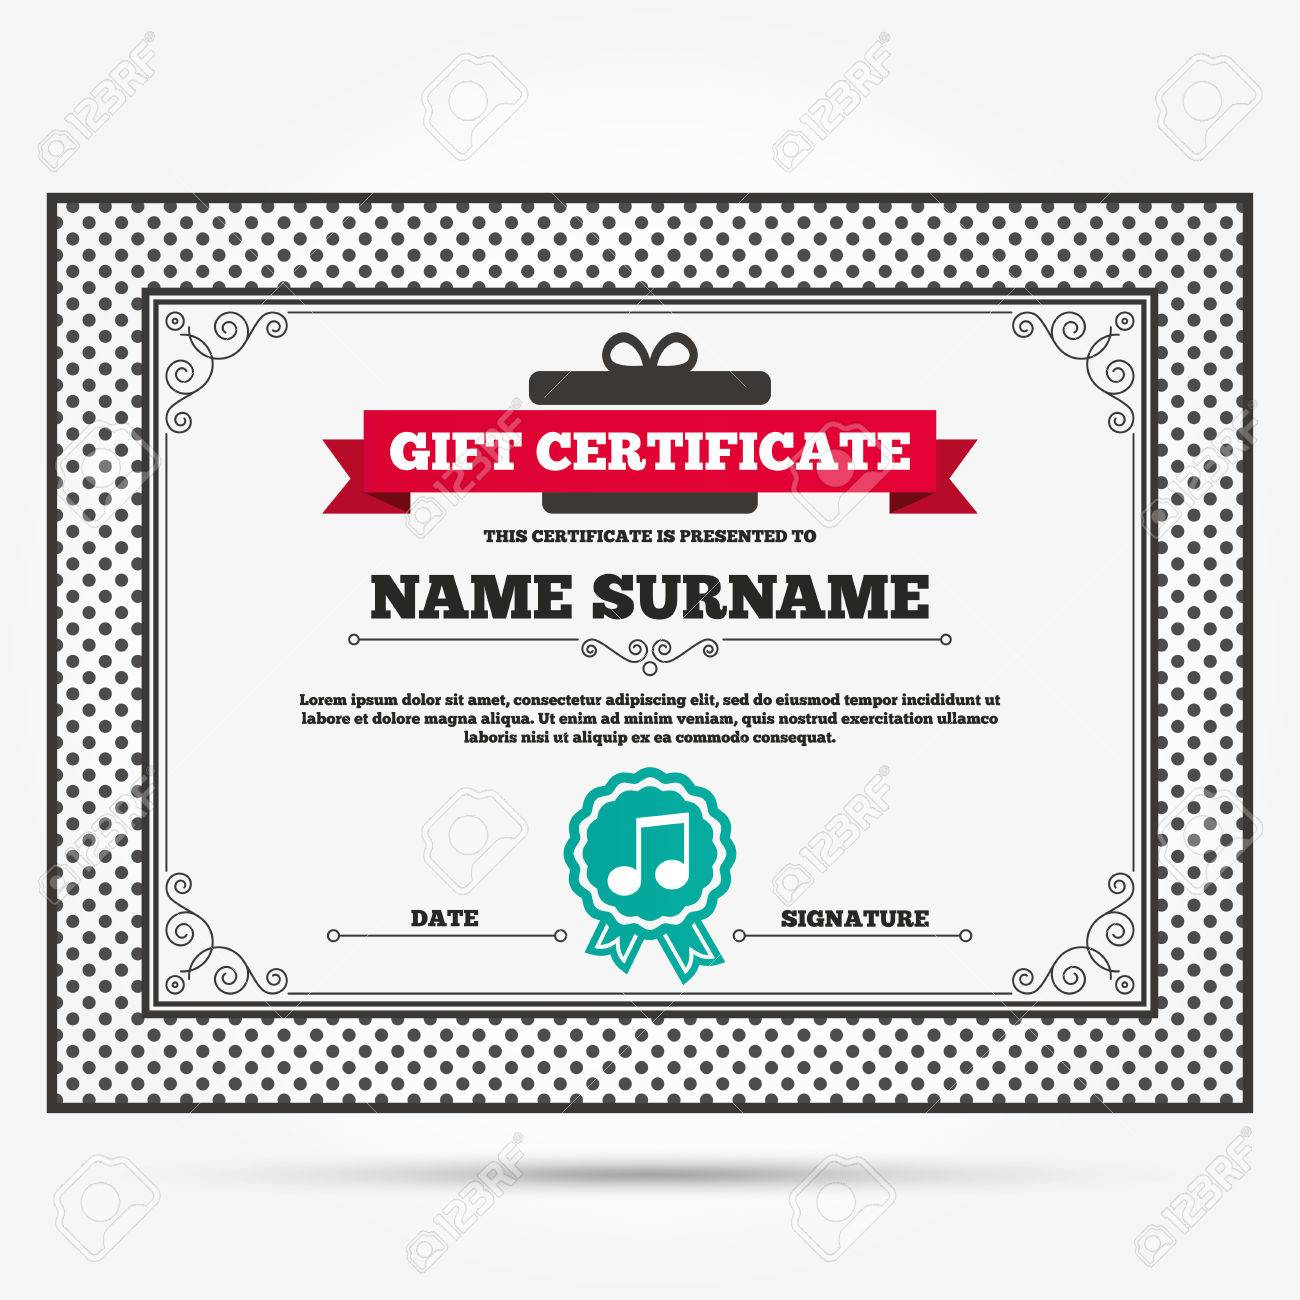 Gift certificate  Music note sign icon  Musical symbol  Template